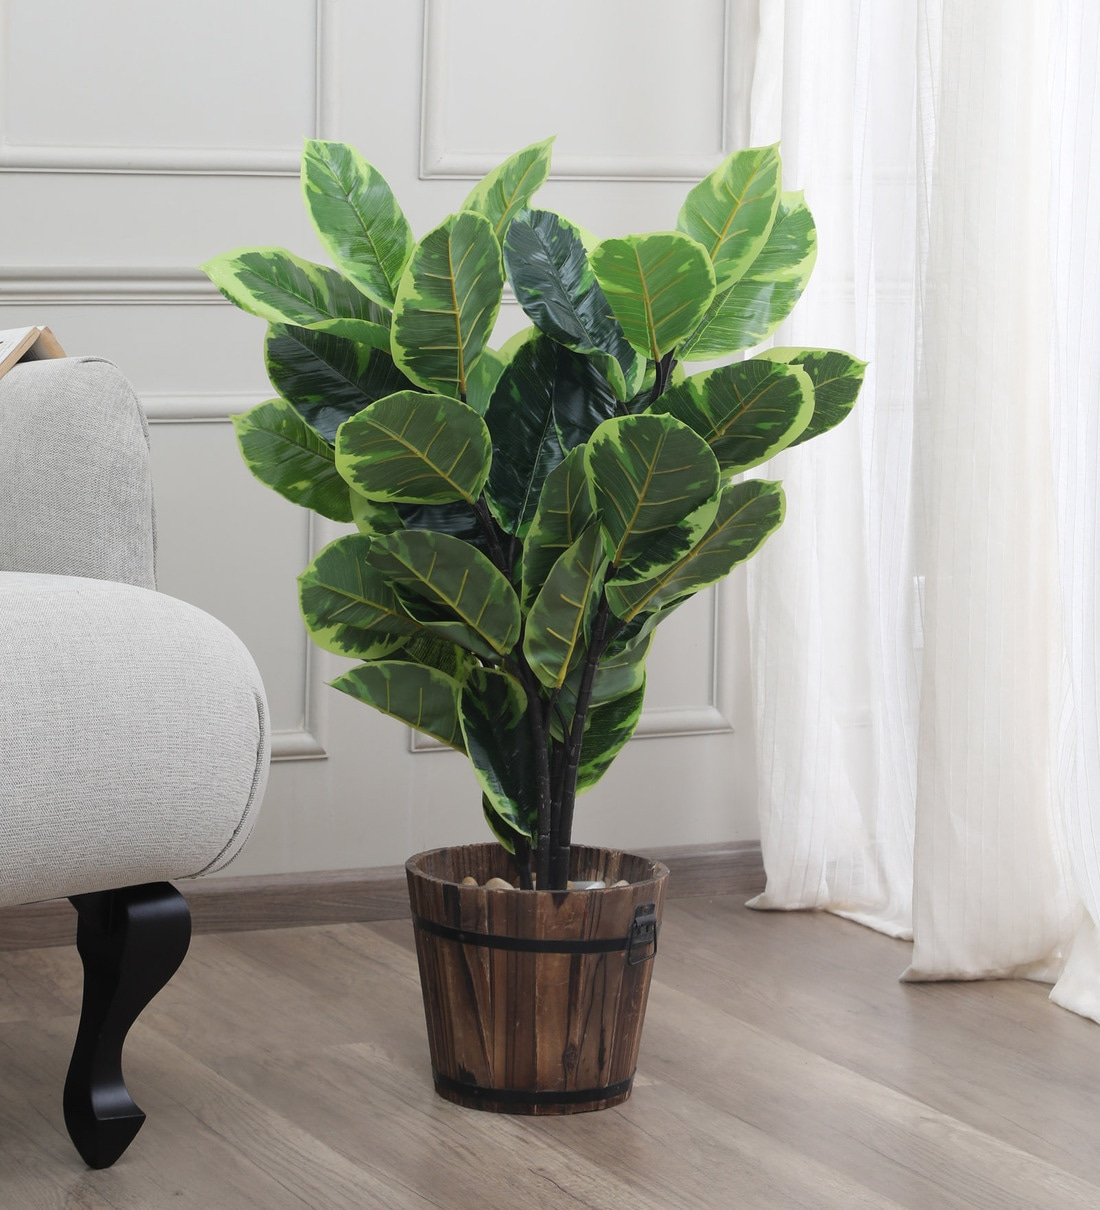 Buy Multicolour Fabric Artificial Rubber Plant Without Pot By Fourwalls Online Artificial Plants Artificial Plants Home Decor Pepperfry Product